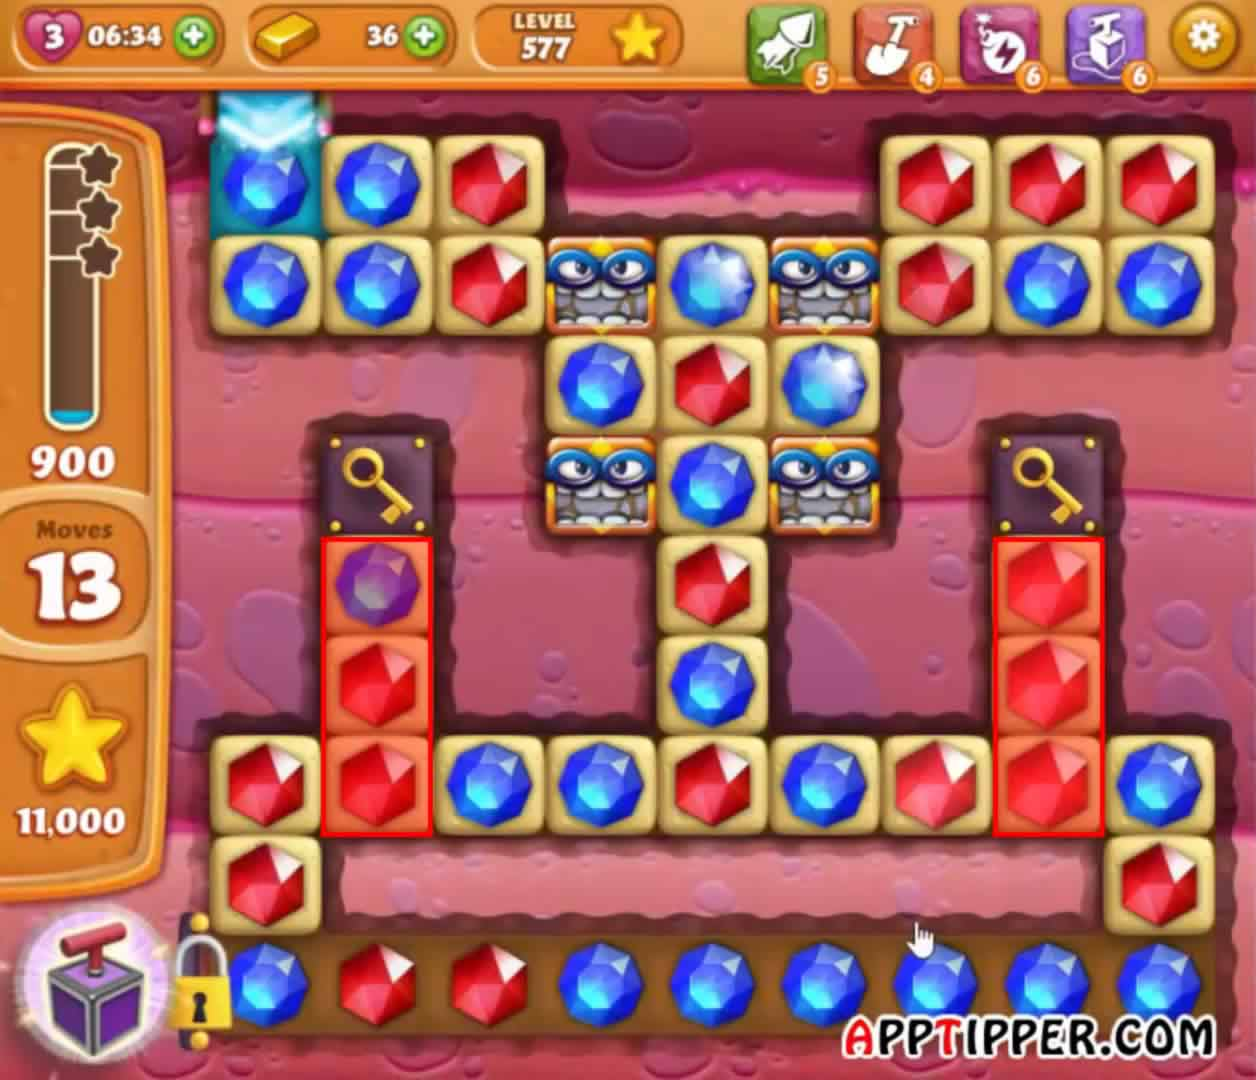 how to move from level 978 on cookie jam